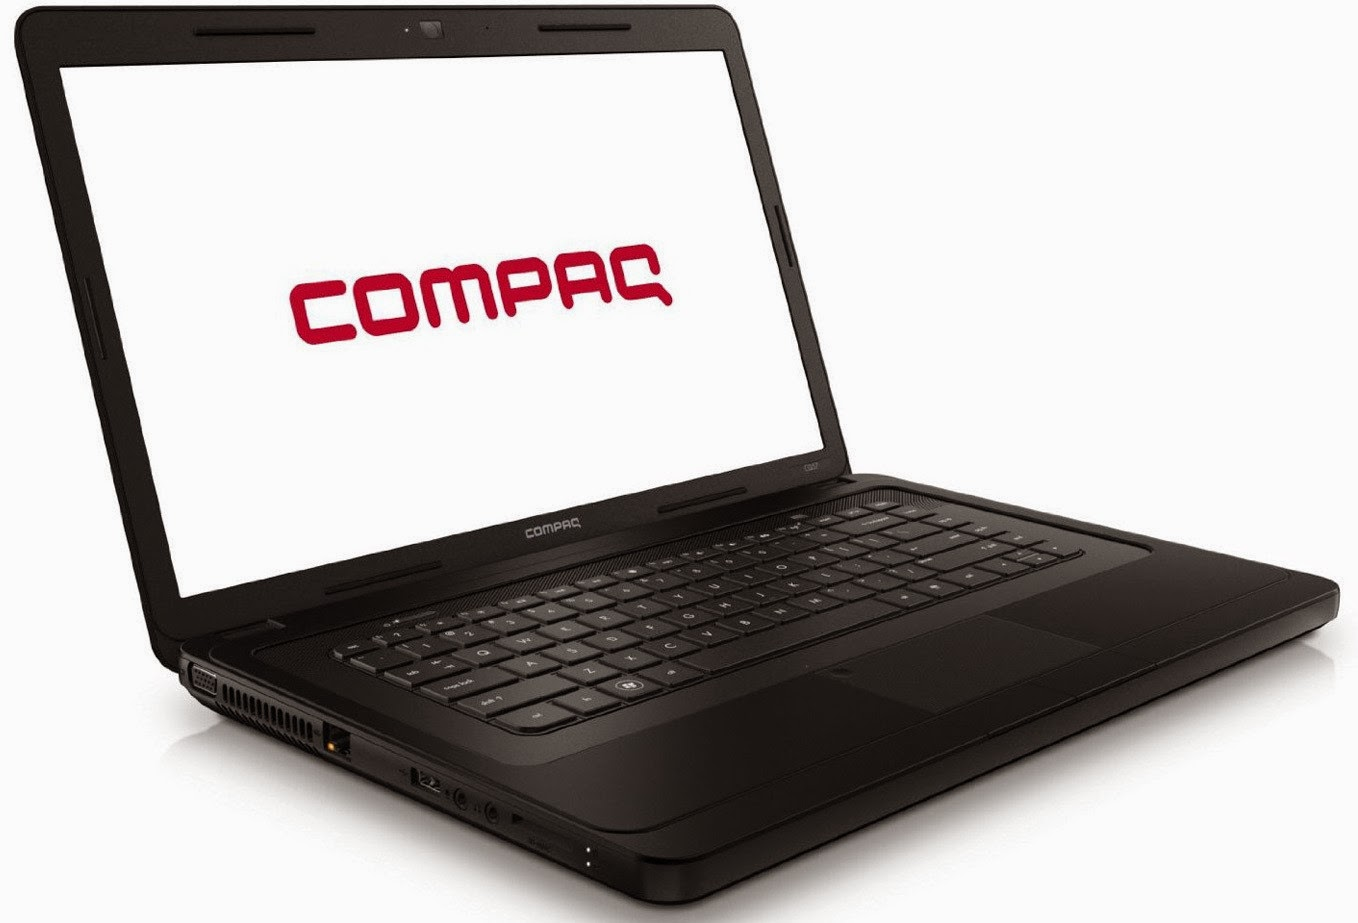 HP Compaq Presario CQ57-401SD Driver Download For Windows 8 And windows 8.1